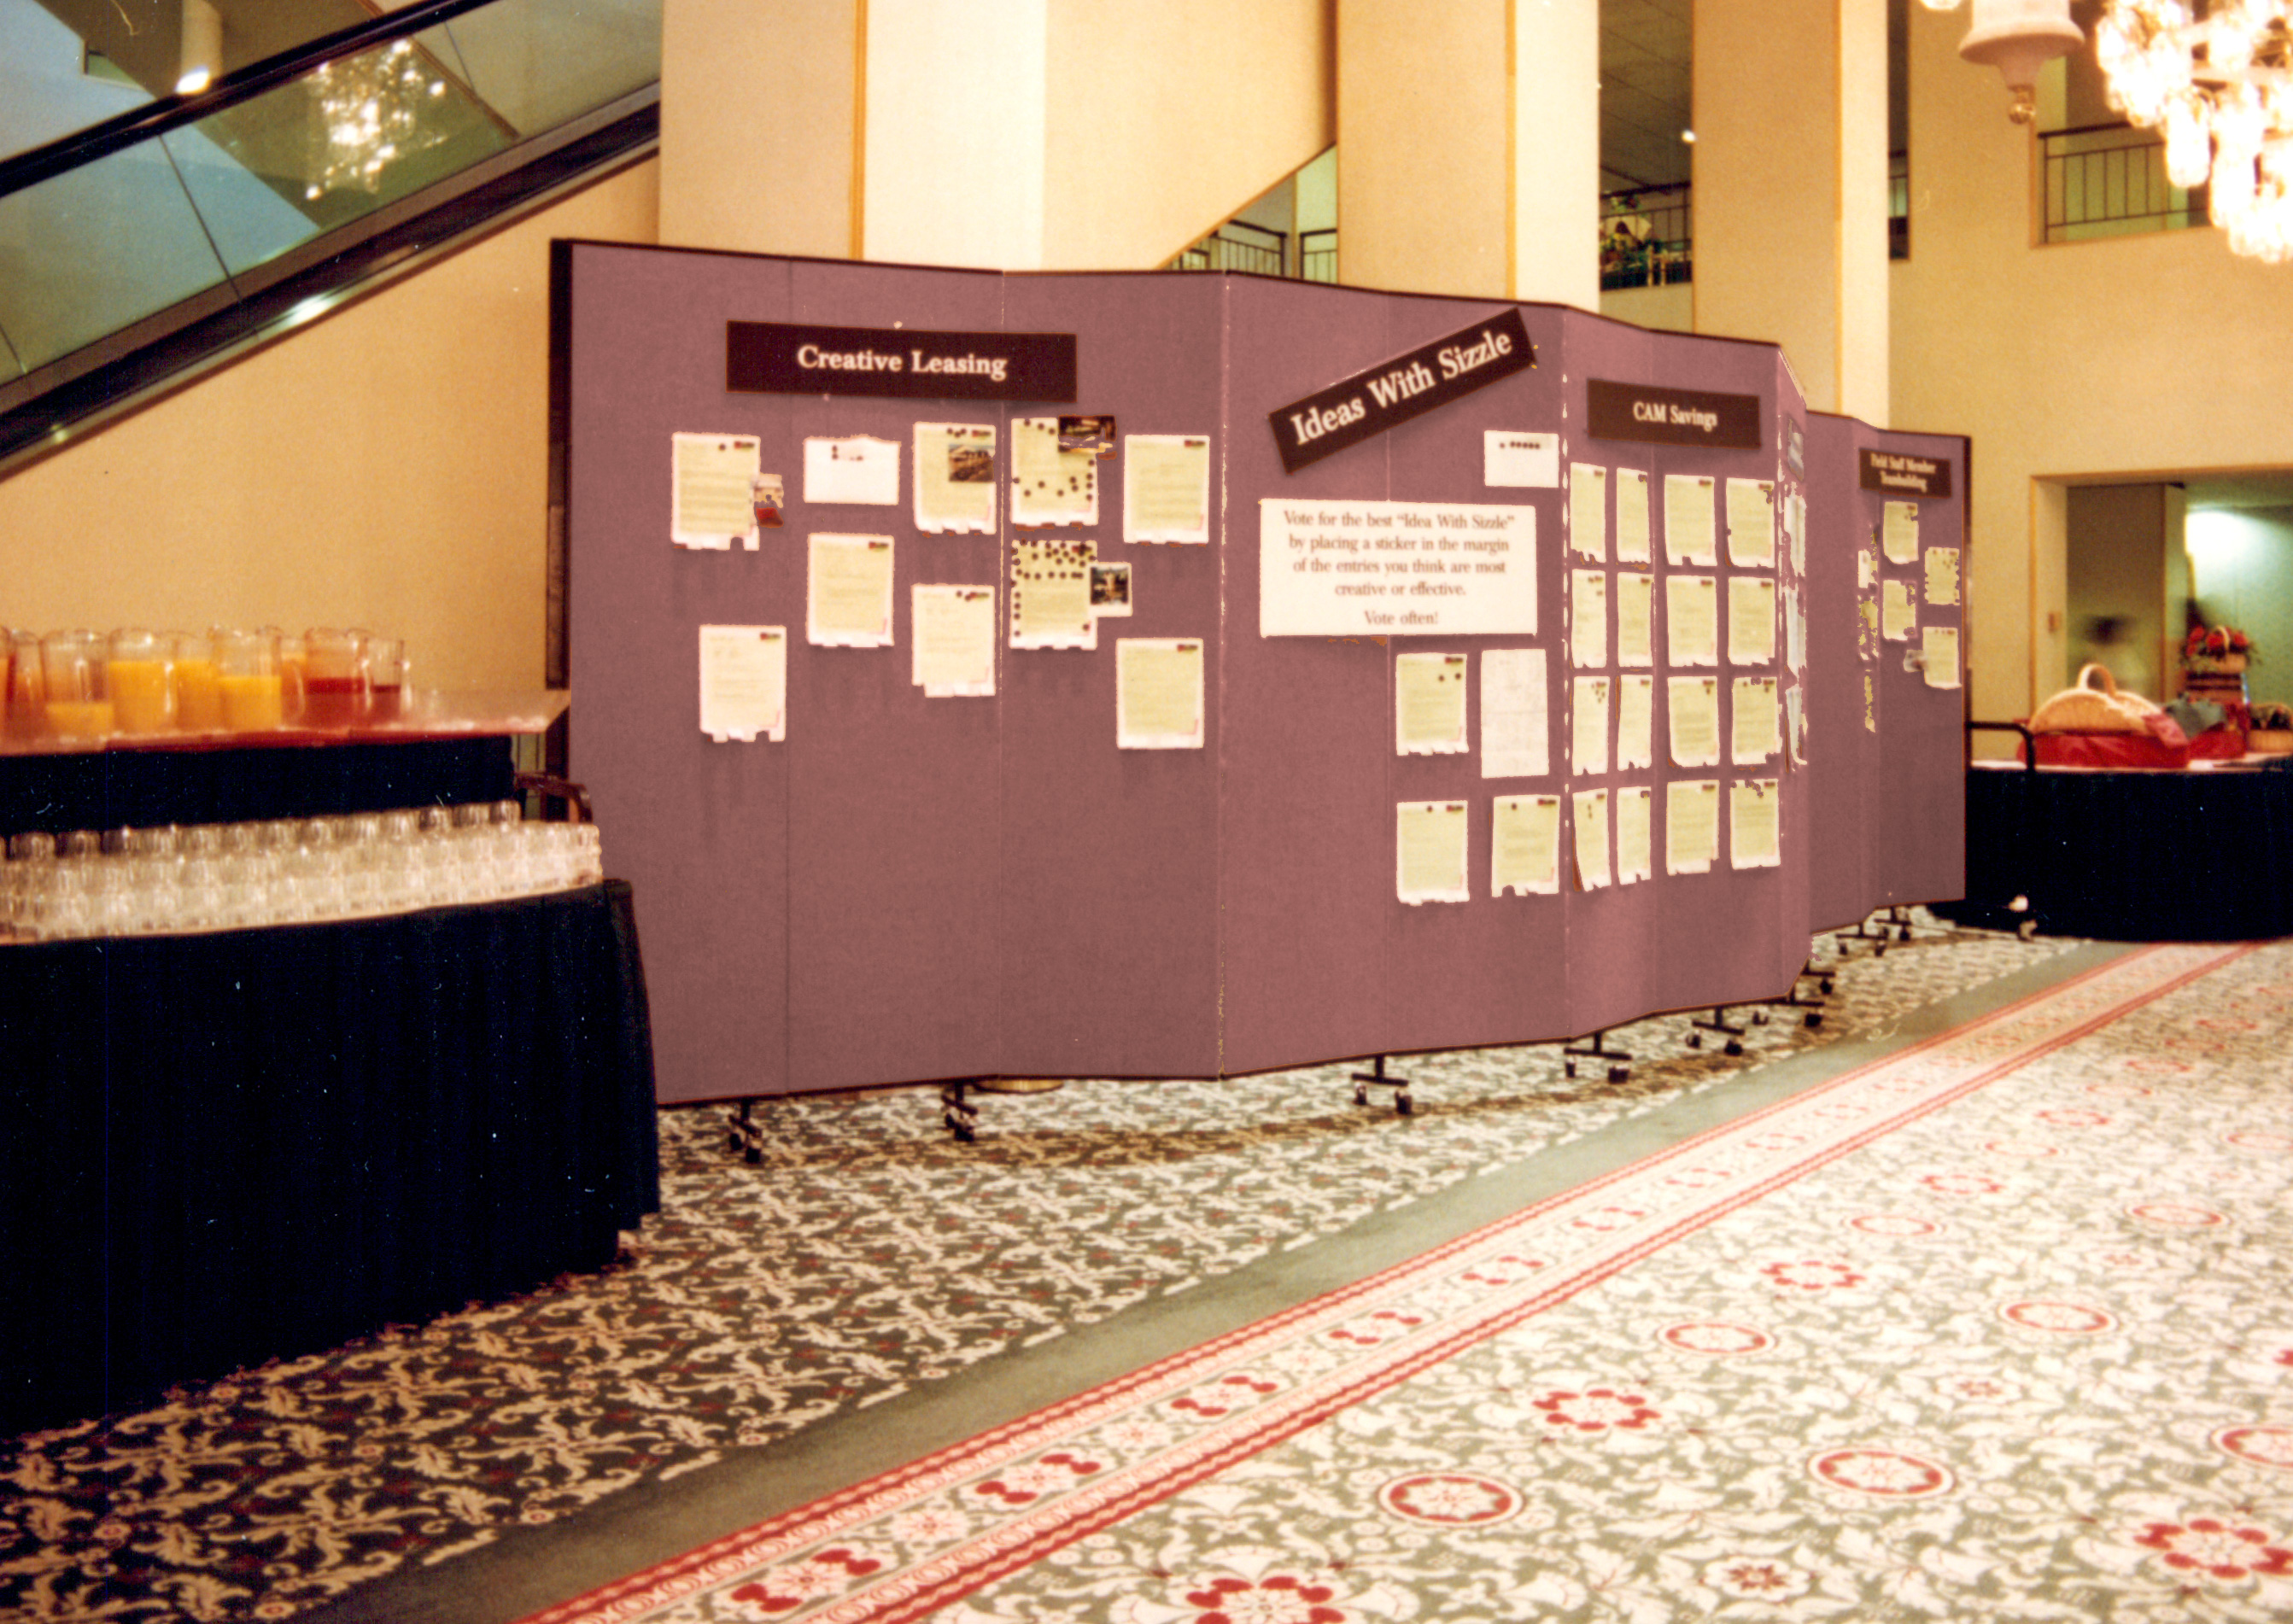 Information for members attending a conference is displayed on portable walls between snack tables